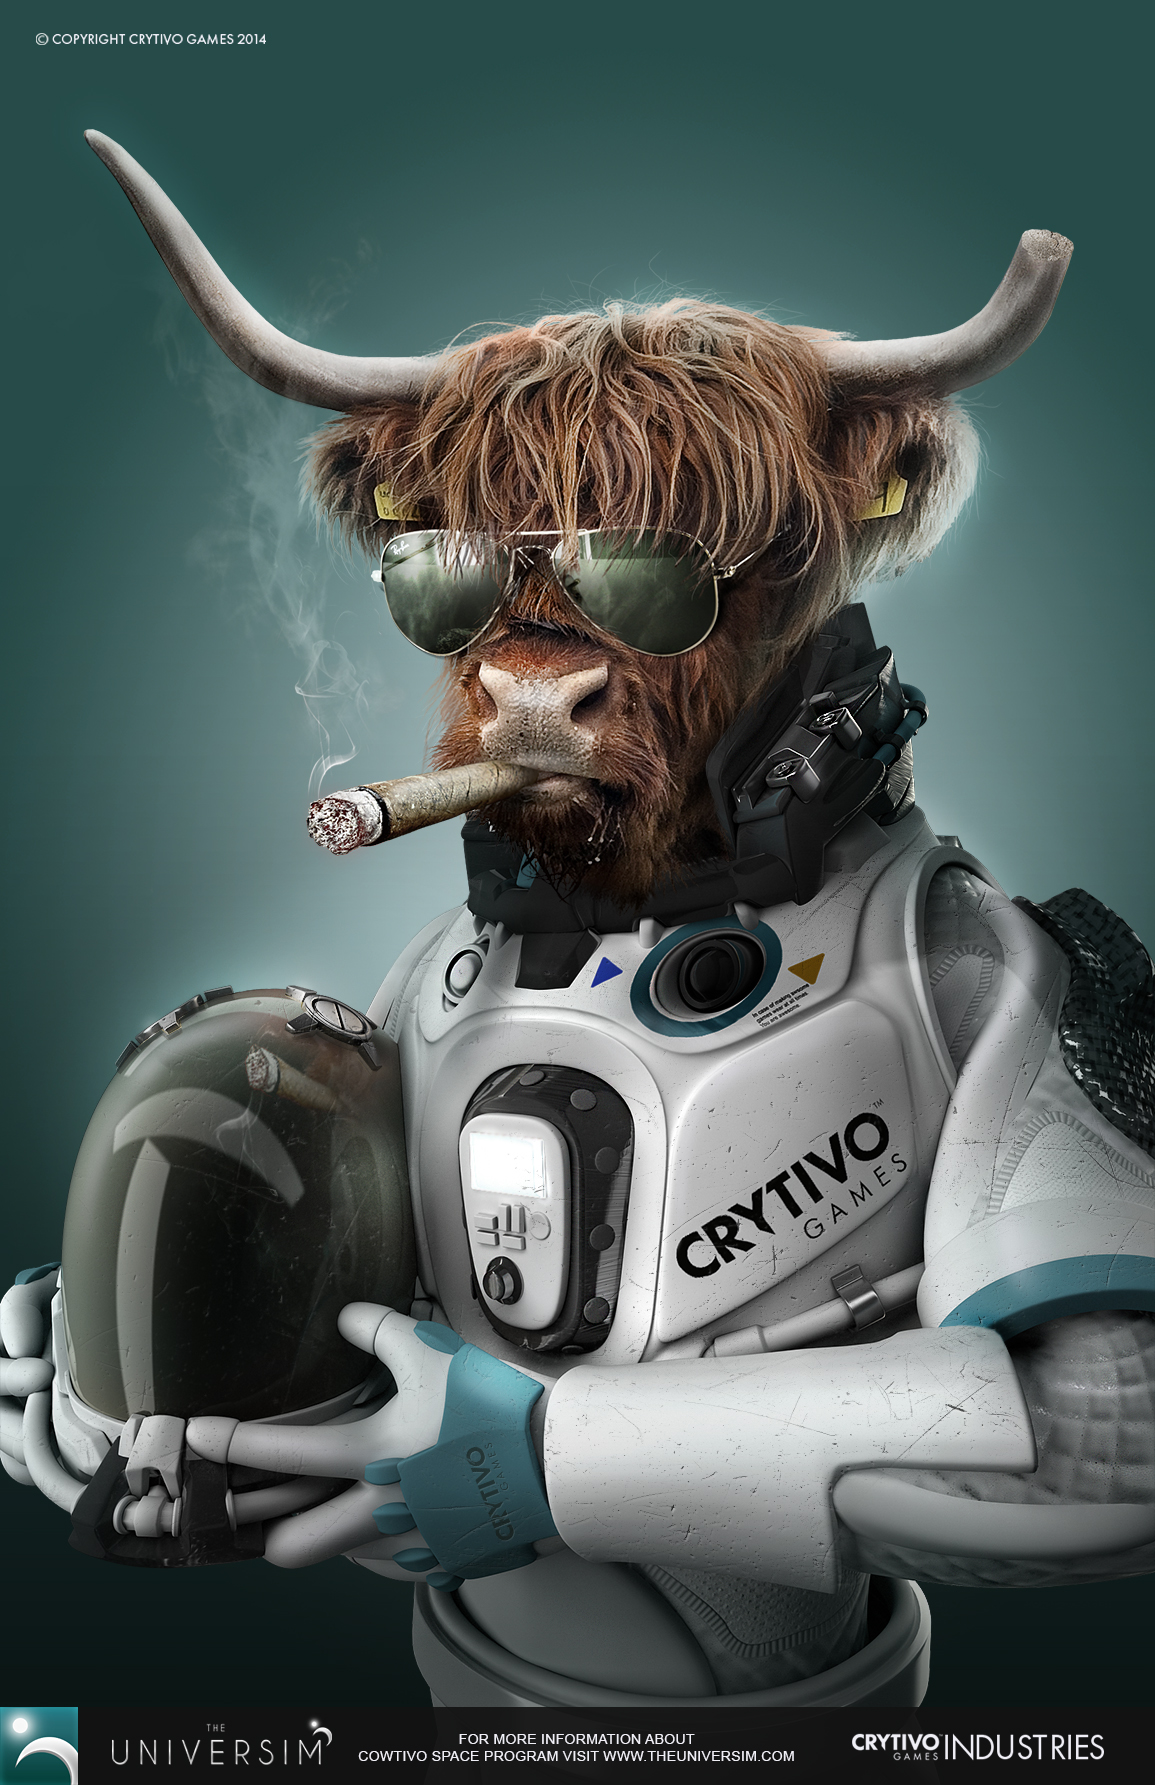 MEET CAPTAIN BULL ANDERSON, THE FIRST OF HIS KIND! by Koshelkov